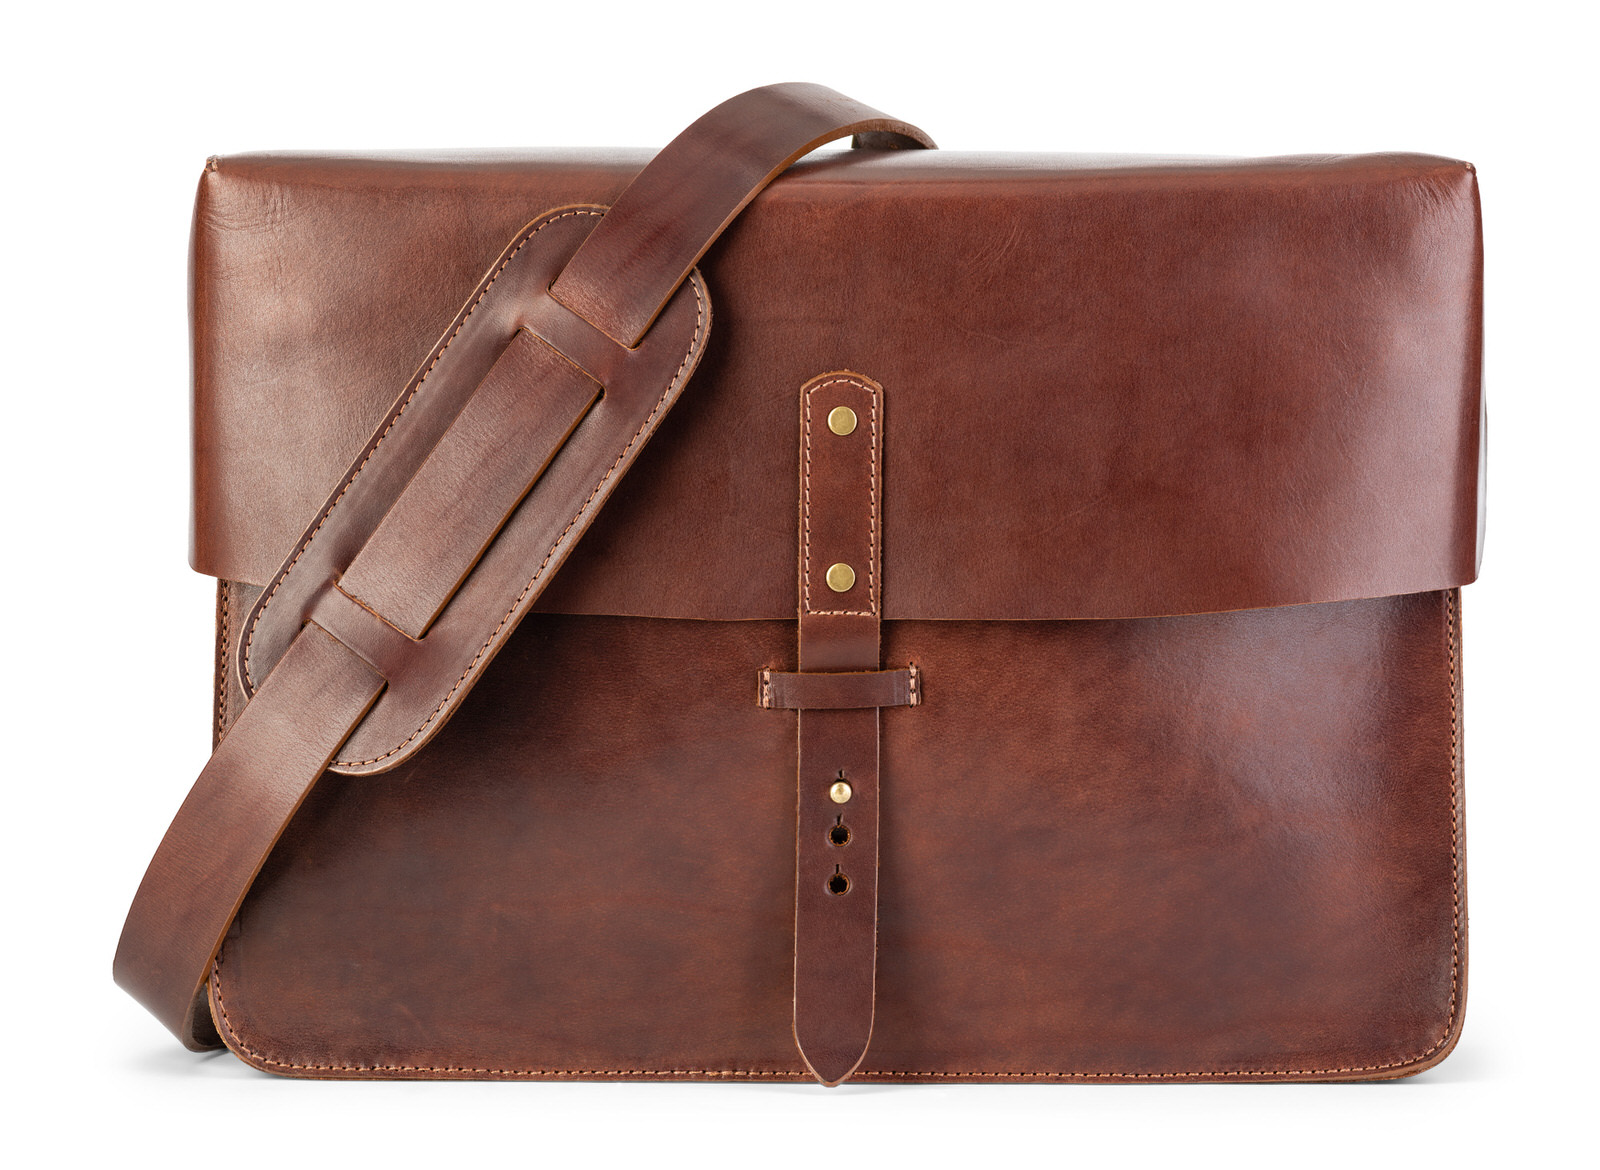 ecomm-brown-leather-bag-1-1.jpg